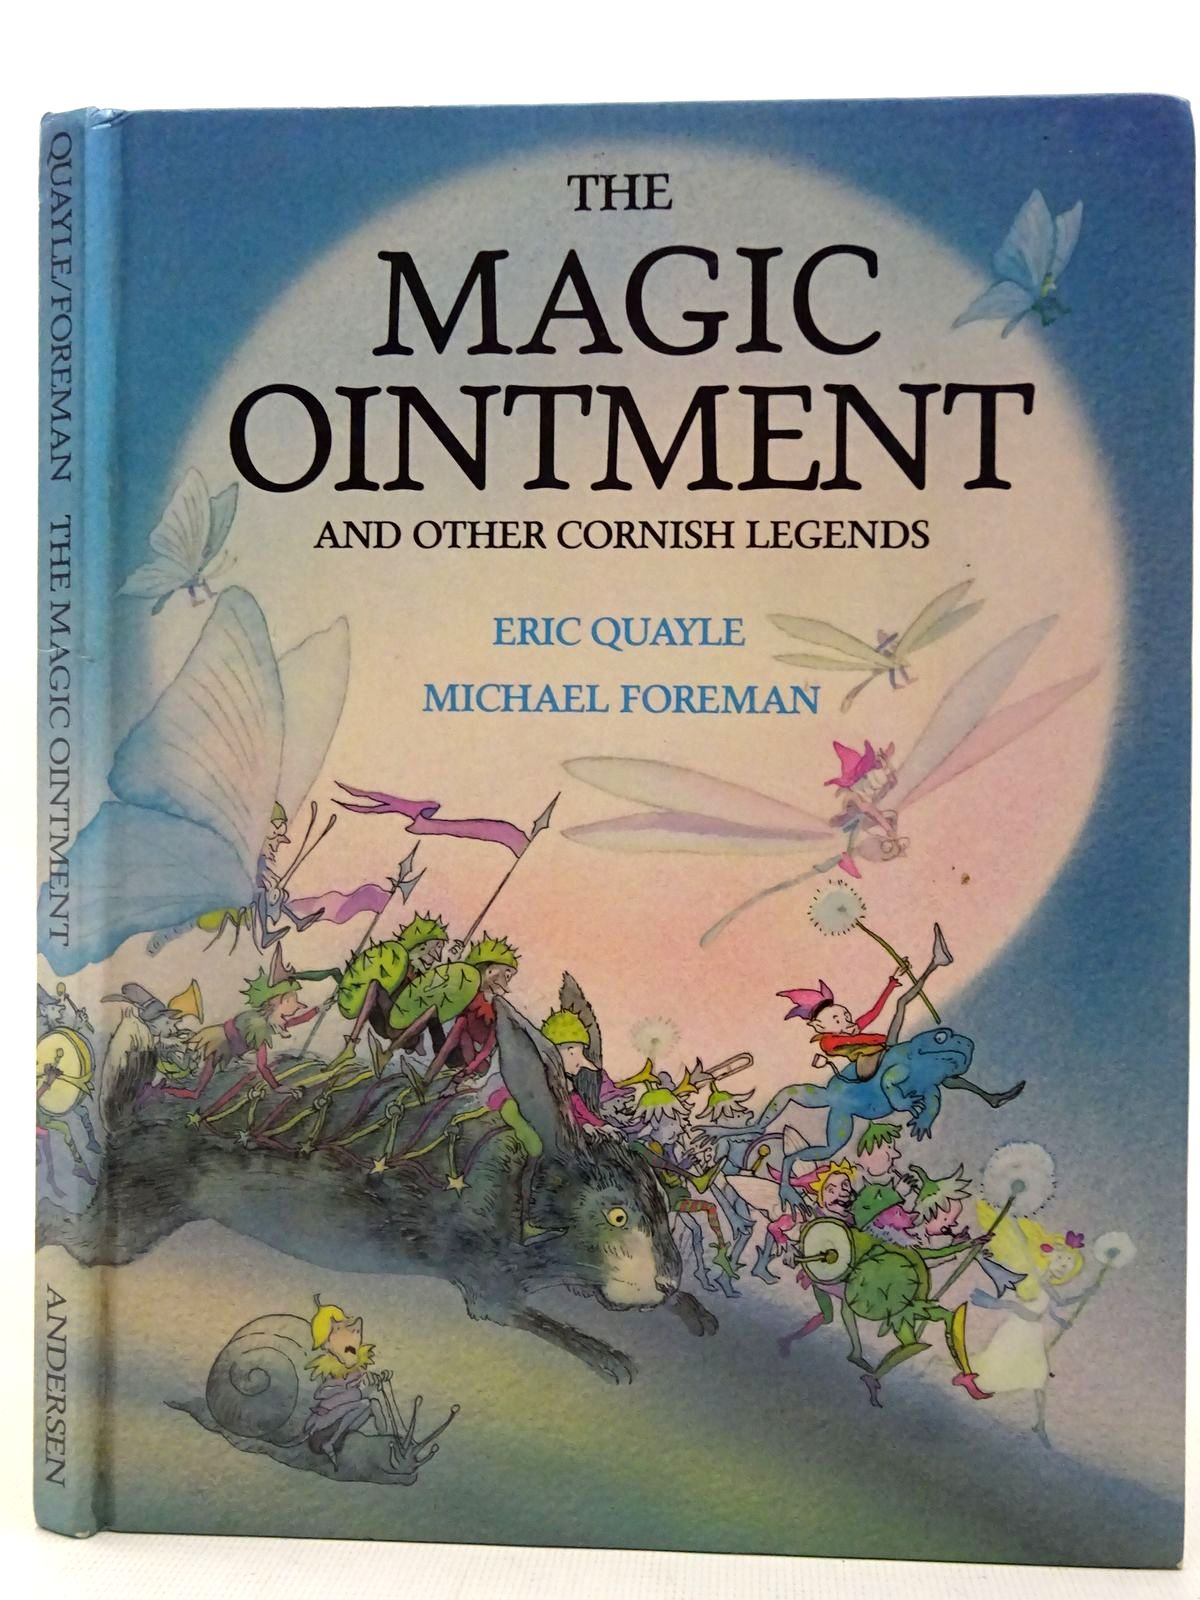 Photo of THE MAGIC OINTMENT AND OTHER CORNISH LEGENDS written by Quayle, Eric illustrated by Foreman, Michael published by Andersen Press (STOCK CODE: 2127085)  for sale by Stella & Rose's Books